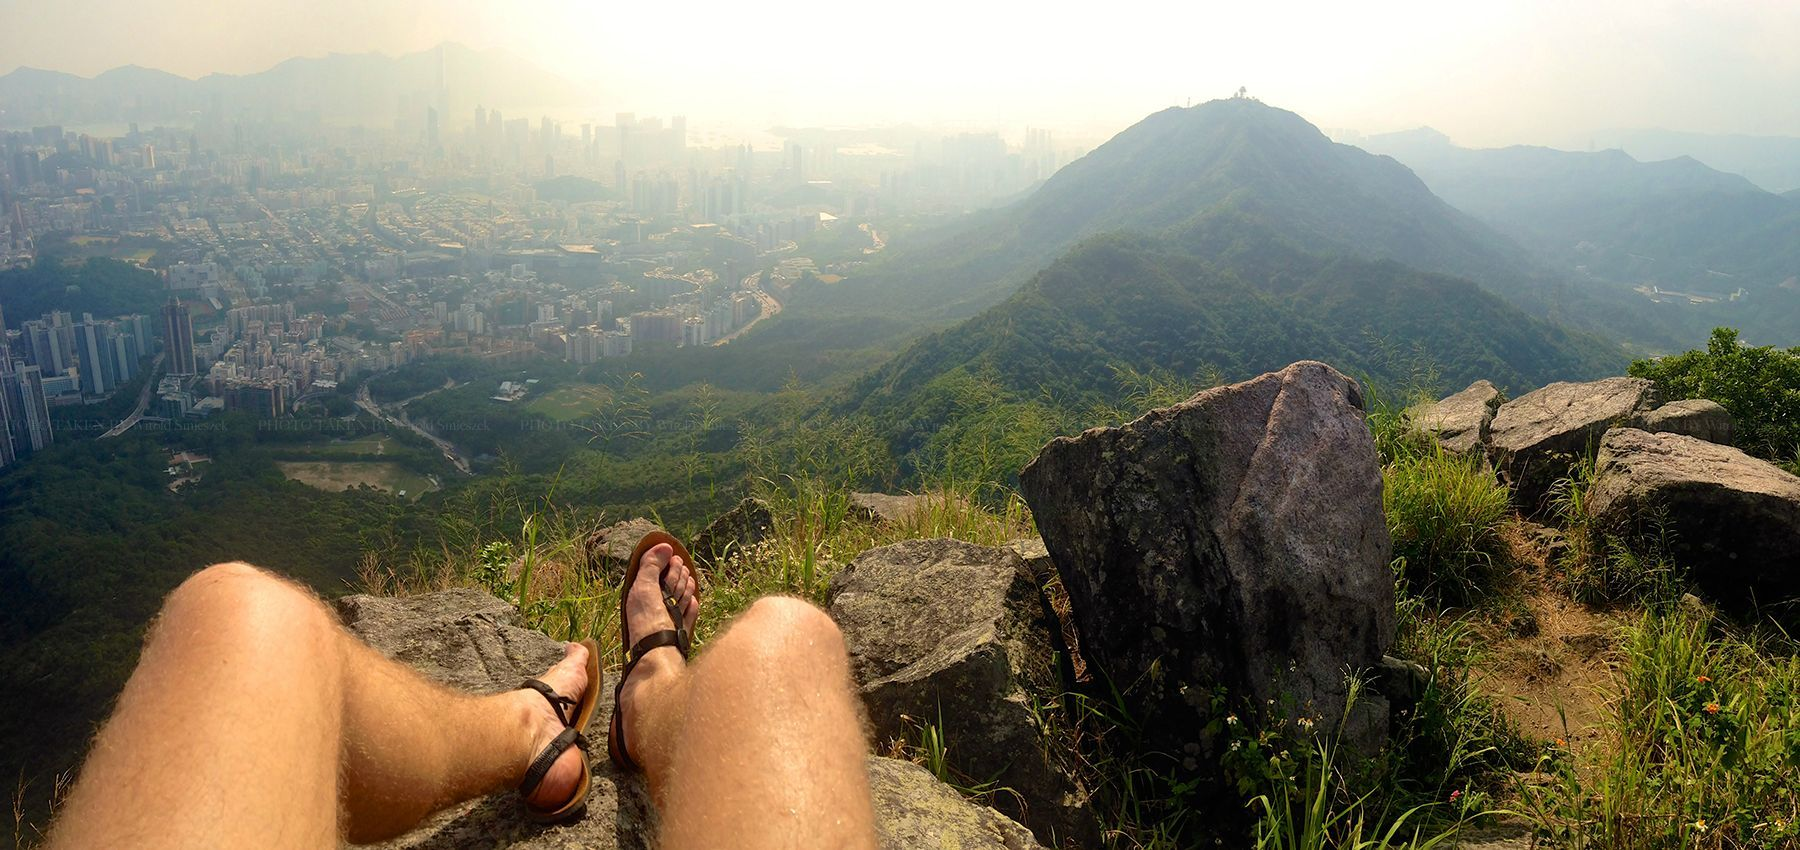 Only in Hong Kong can you hike along a beautiful trail and look at the very centre of the city at the same time. - Imgur